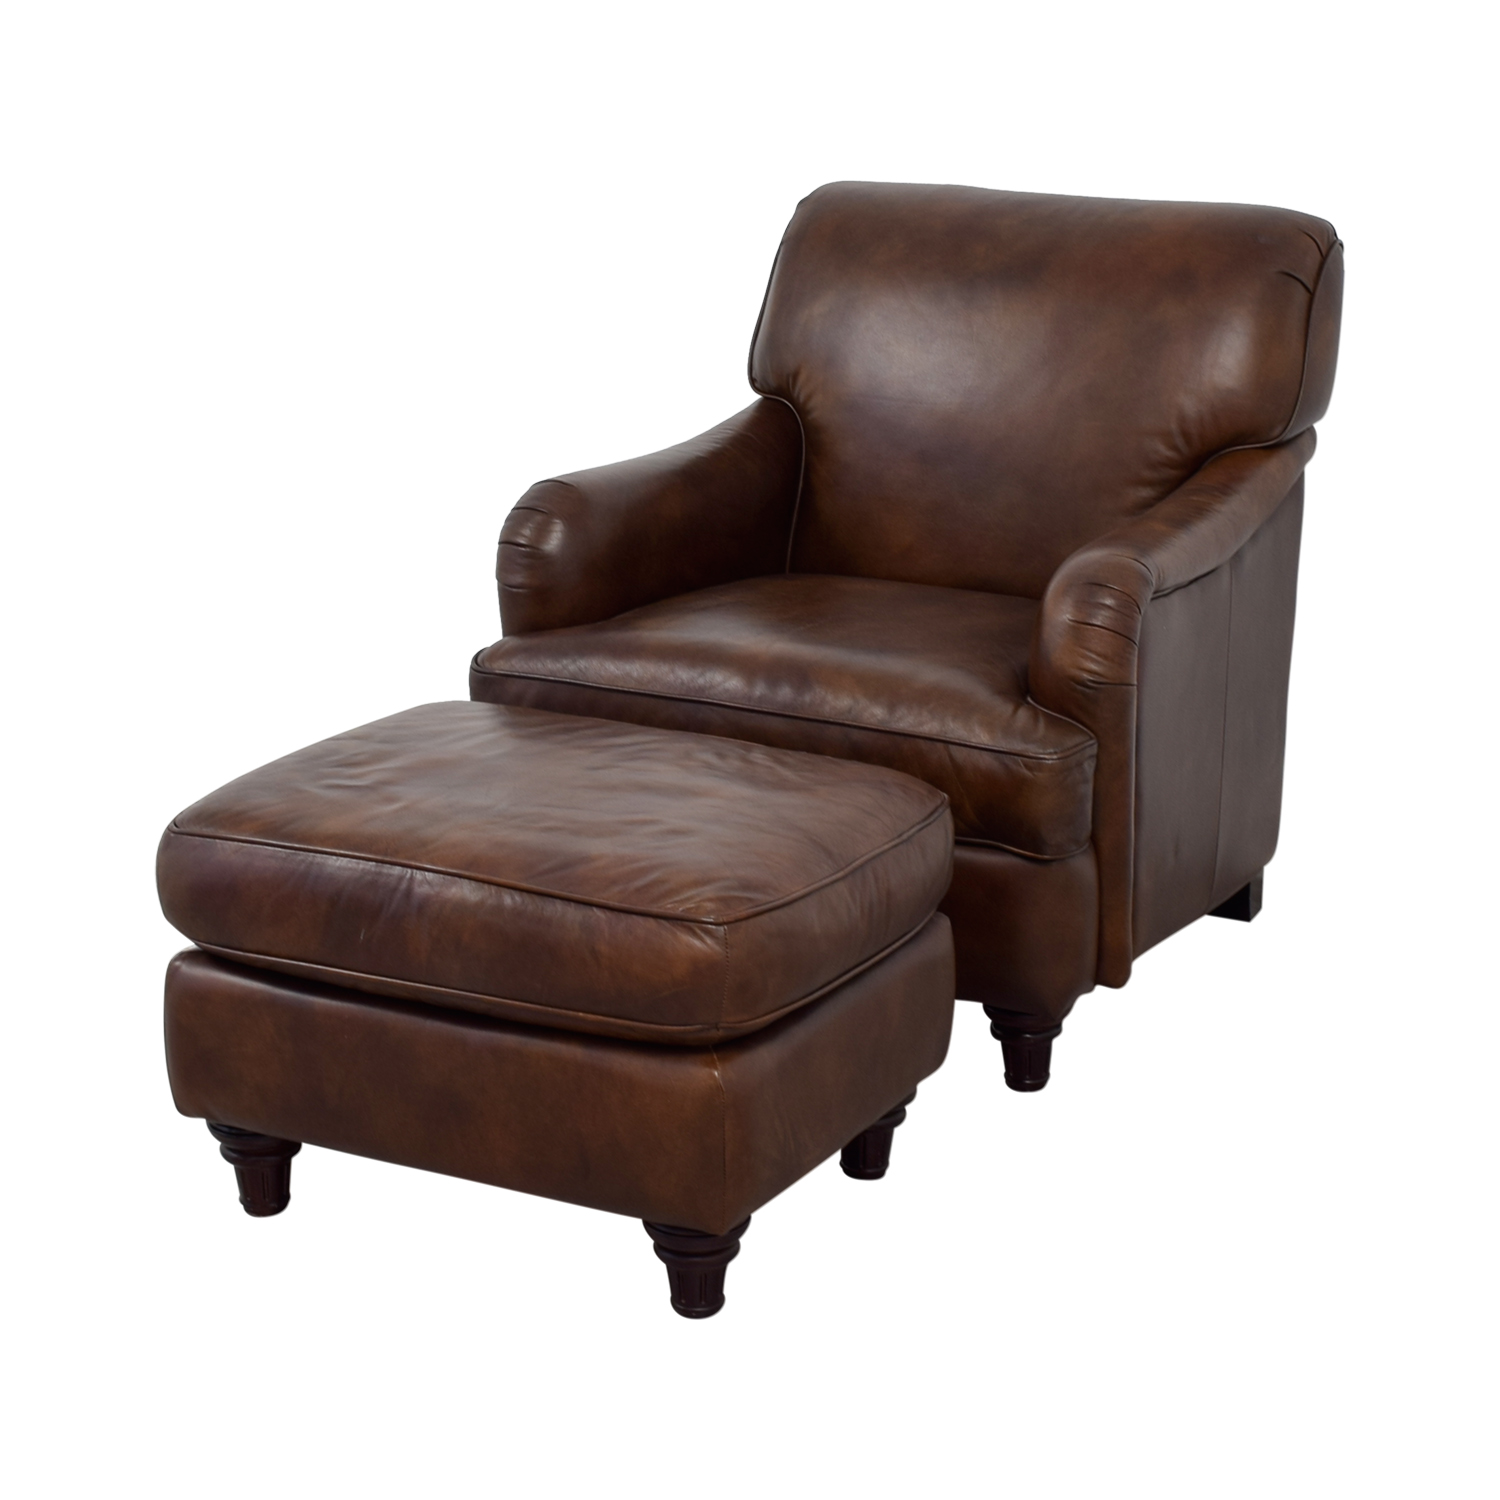 79 Off Lane Leather Lane Leather Chair And Ottoman Chairs